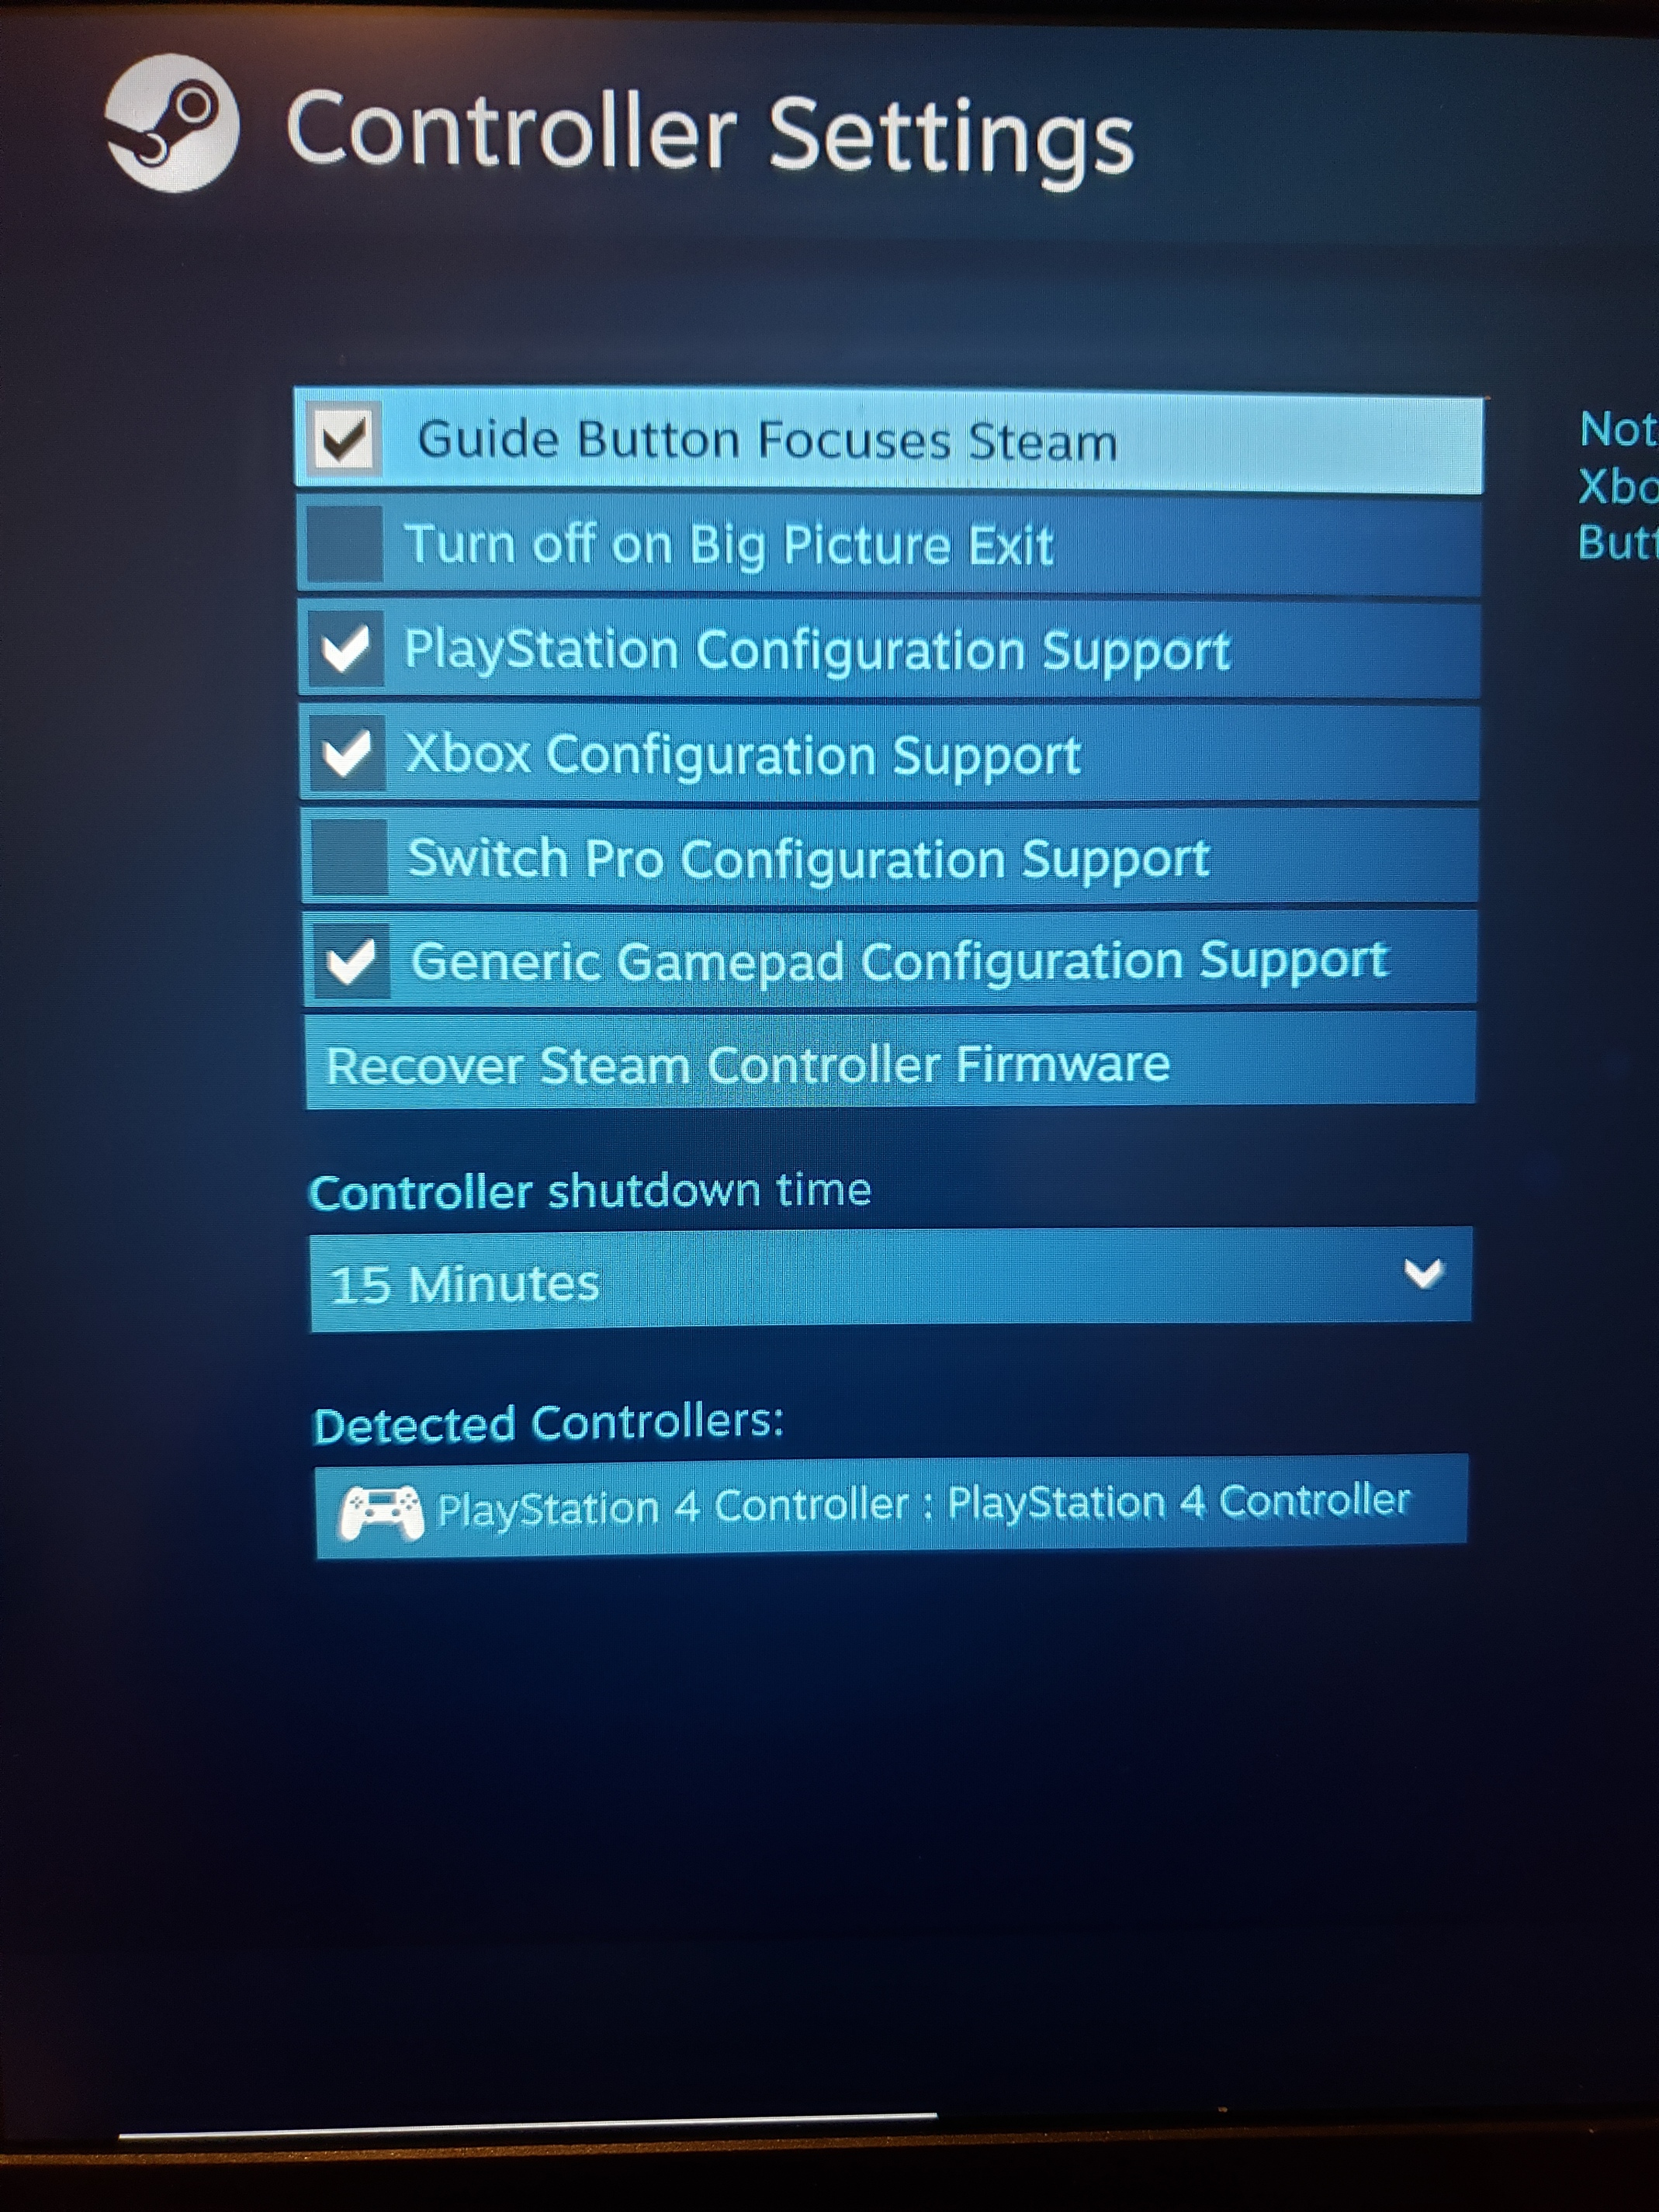 Controller not working for gears 5 pc - Gears 5 - Gears Forums